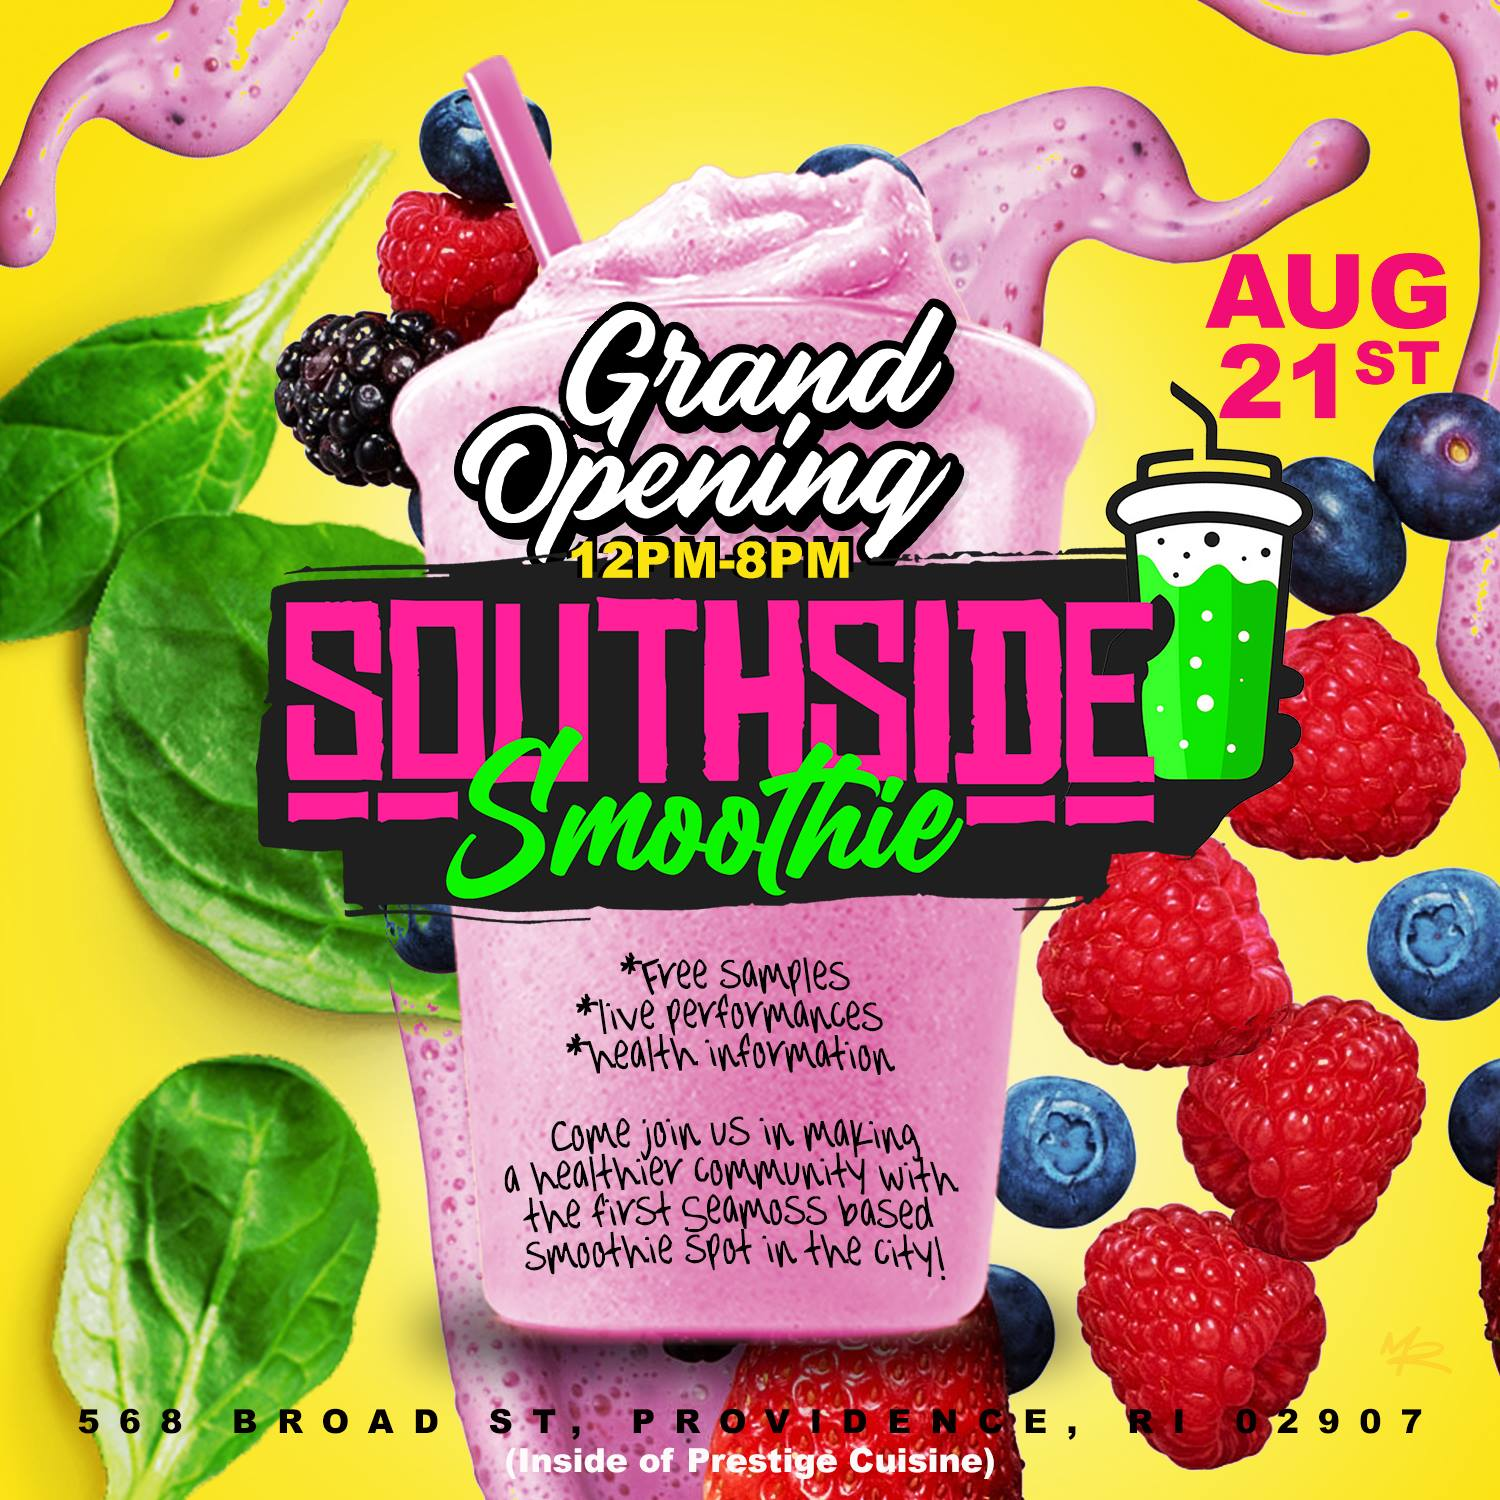 Krook Rock Opens South Side Smoothie